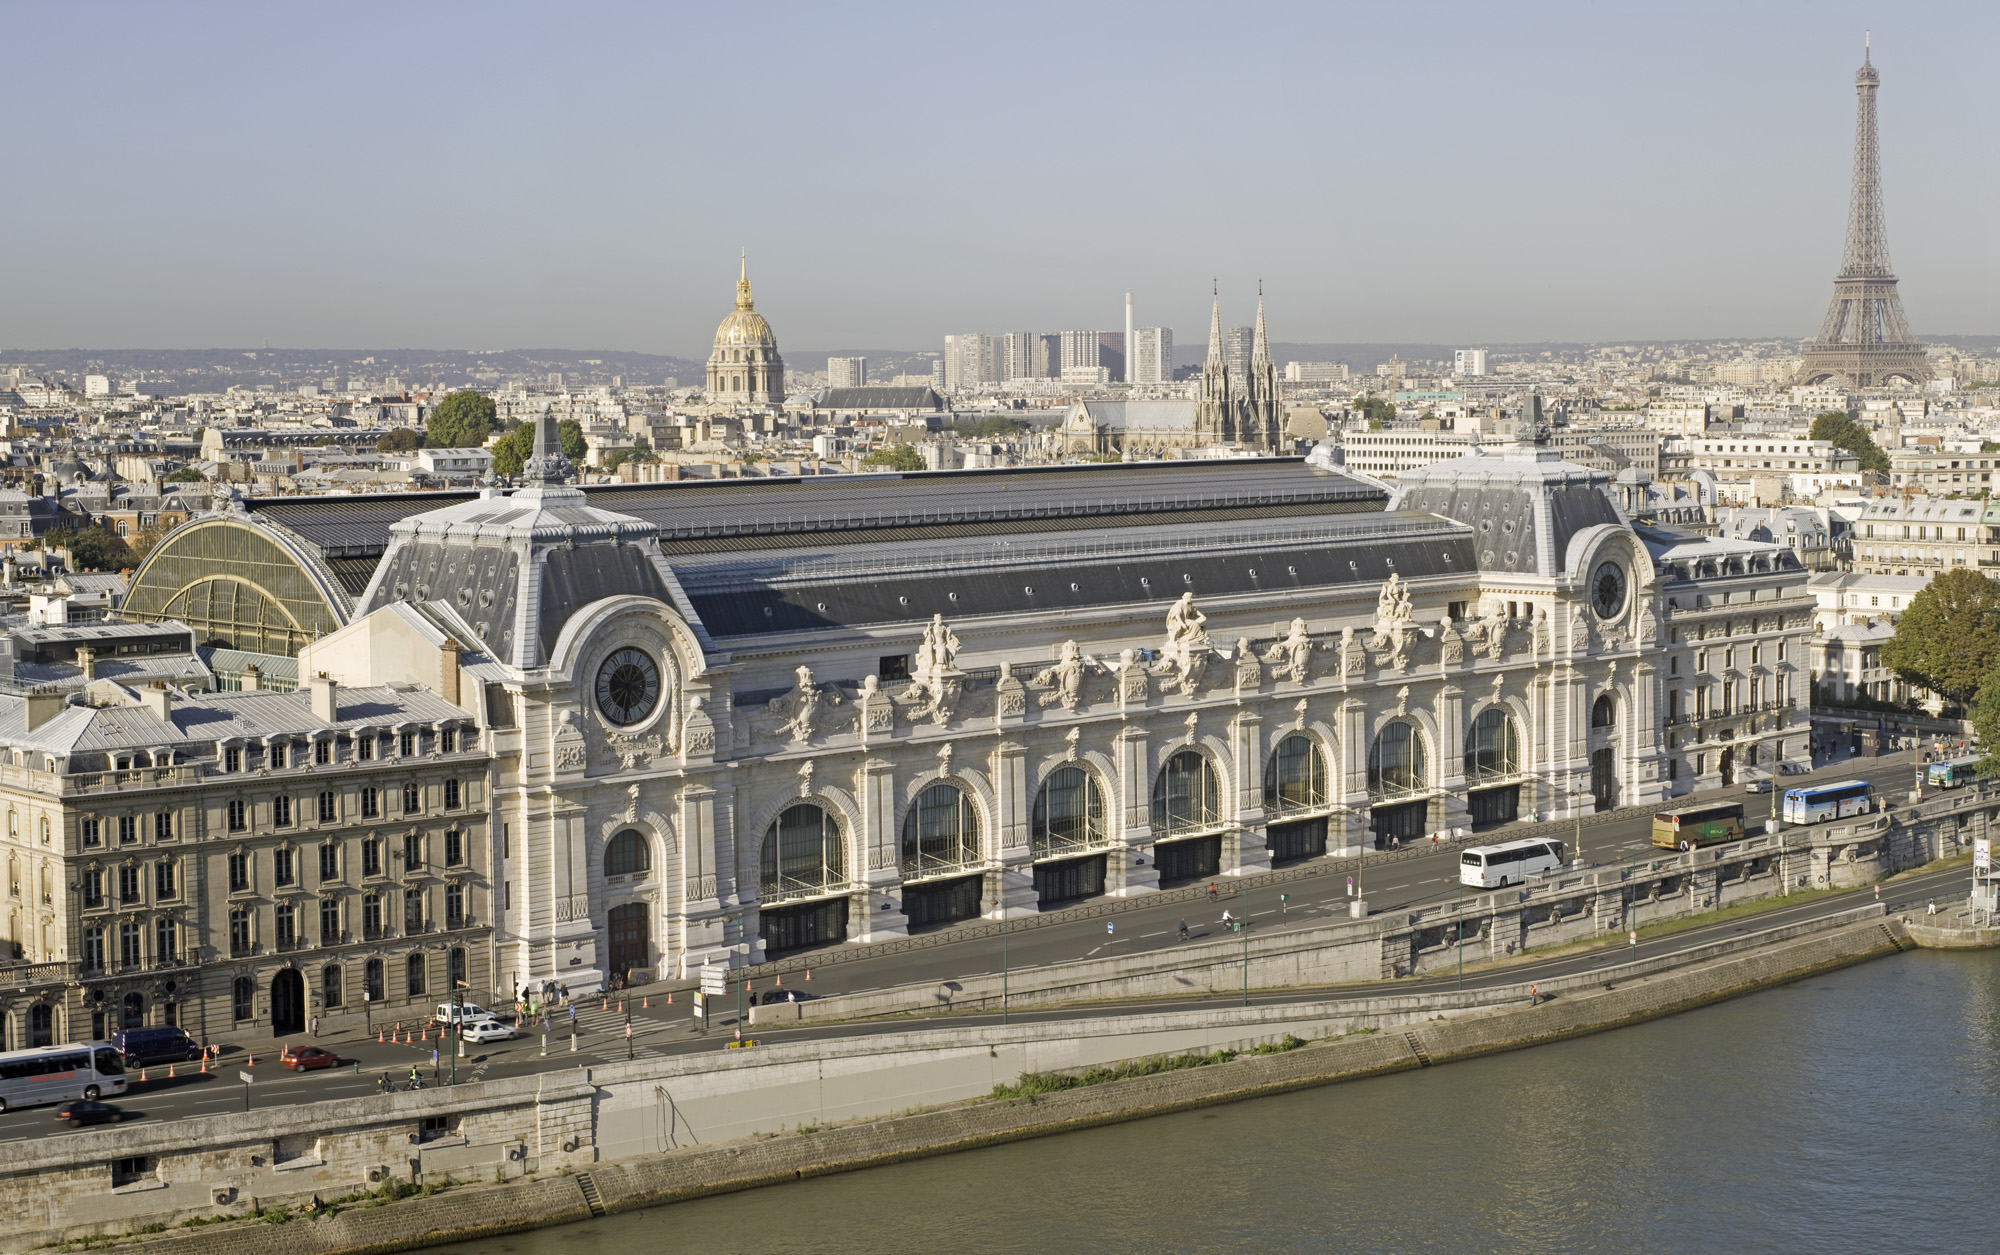 Guided Tour of the Orsay Museum